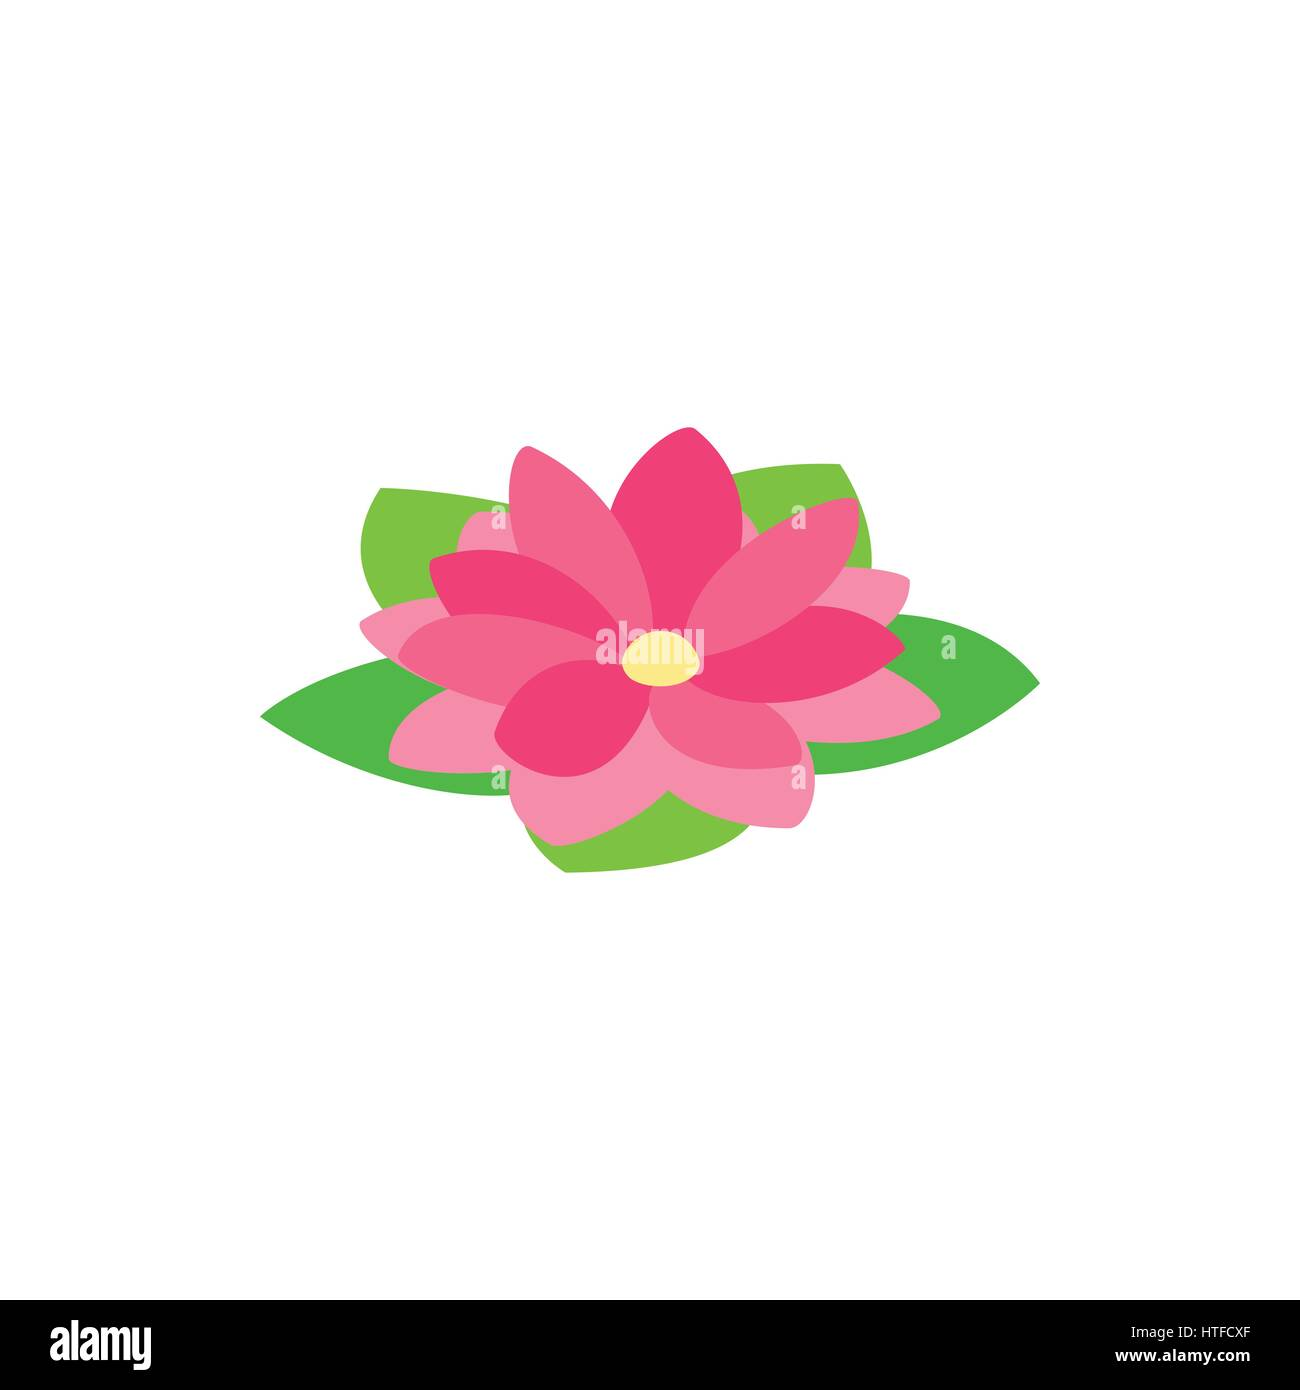 Lotus flower drawing isolated icon stock photos lotus flower lotus flower icon isometric 3d style stock image dhlflorist Images